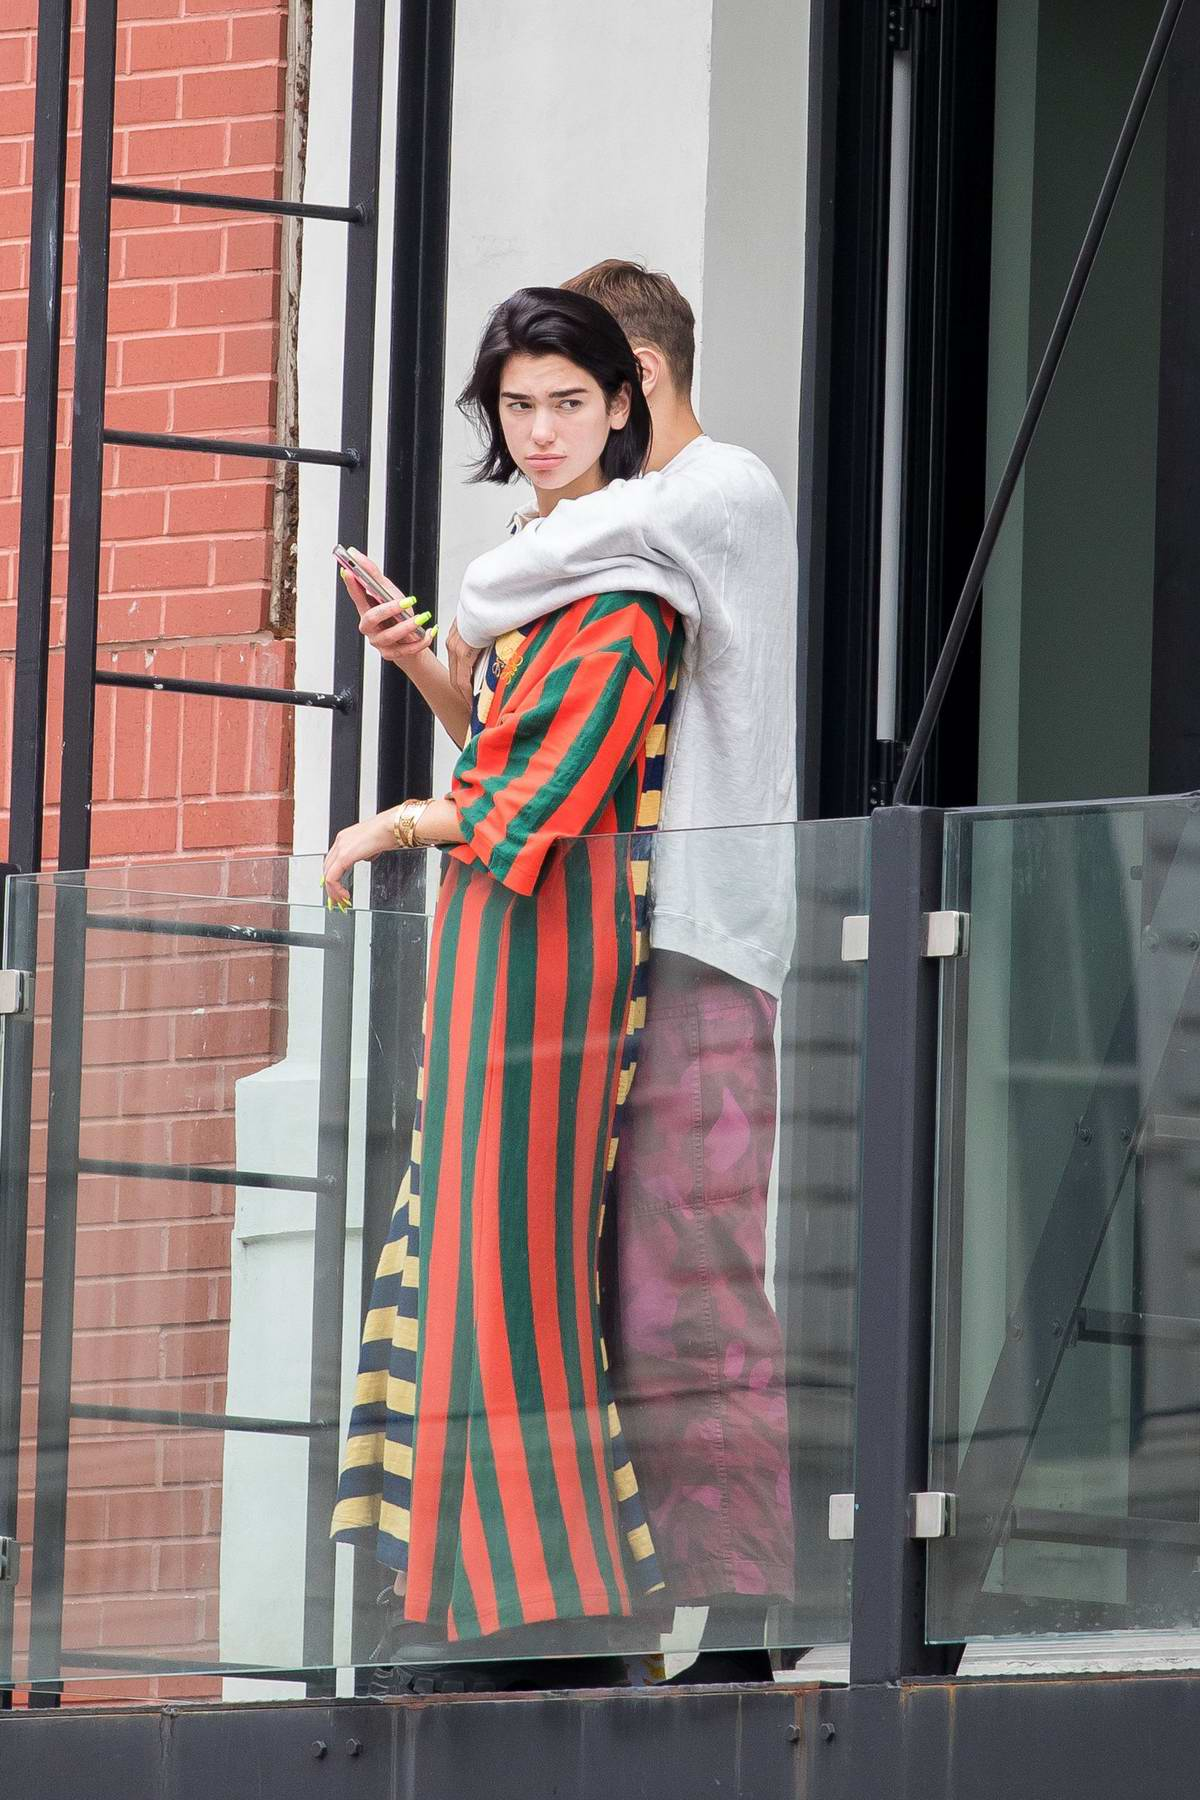 Dua Lipa and Anwar Hadid hang out on the balcony of an apartment complex in New York City